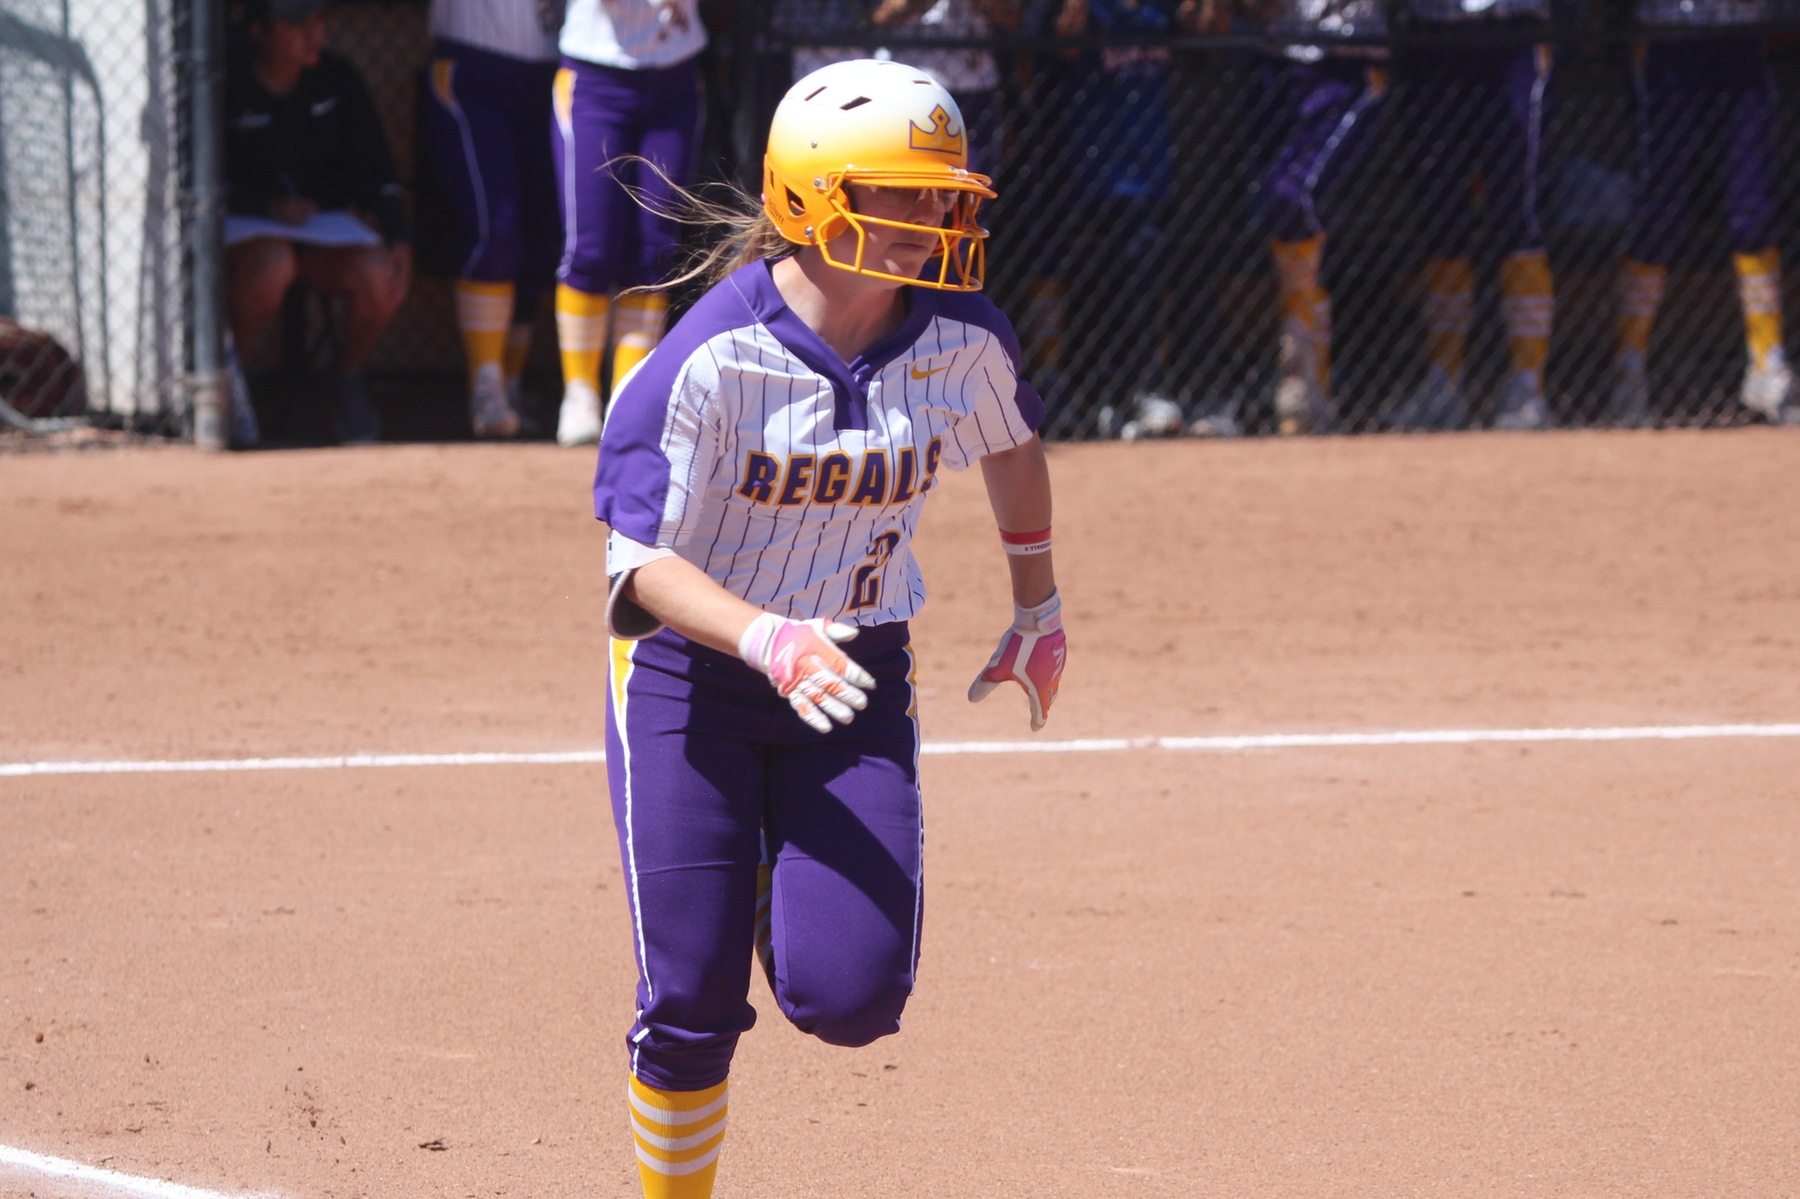 Lauren Salvati tallied four RBI in the doubleheader with Chapman.